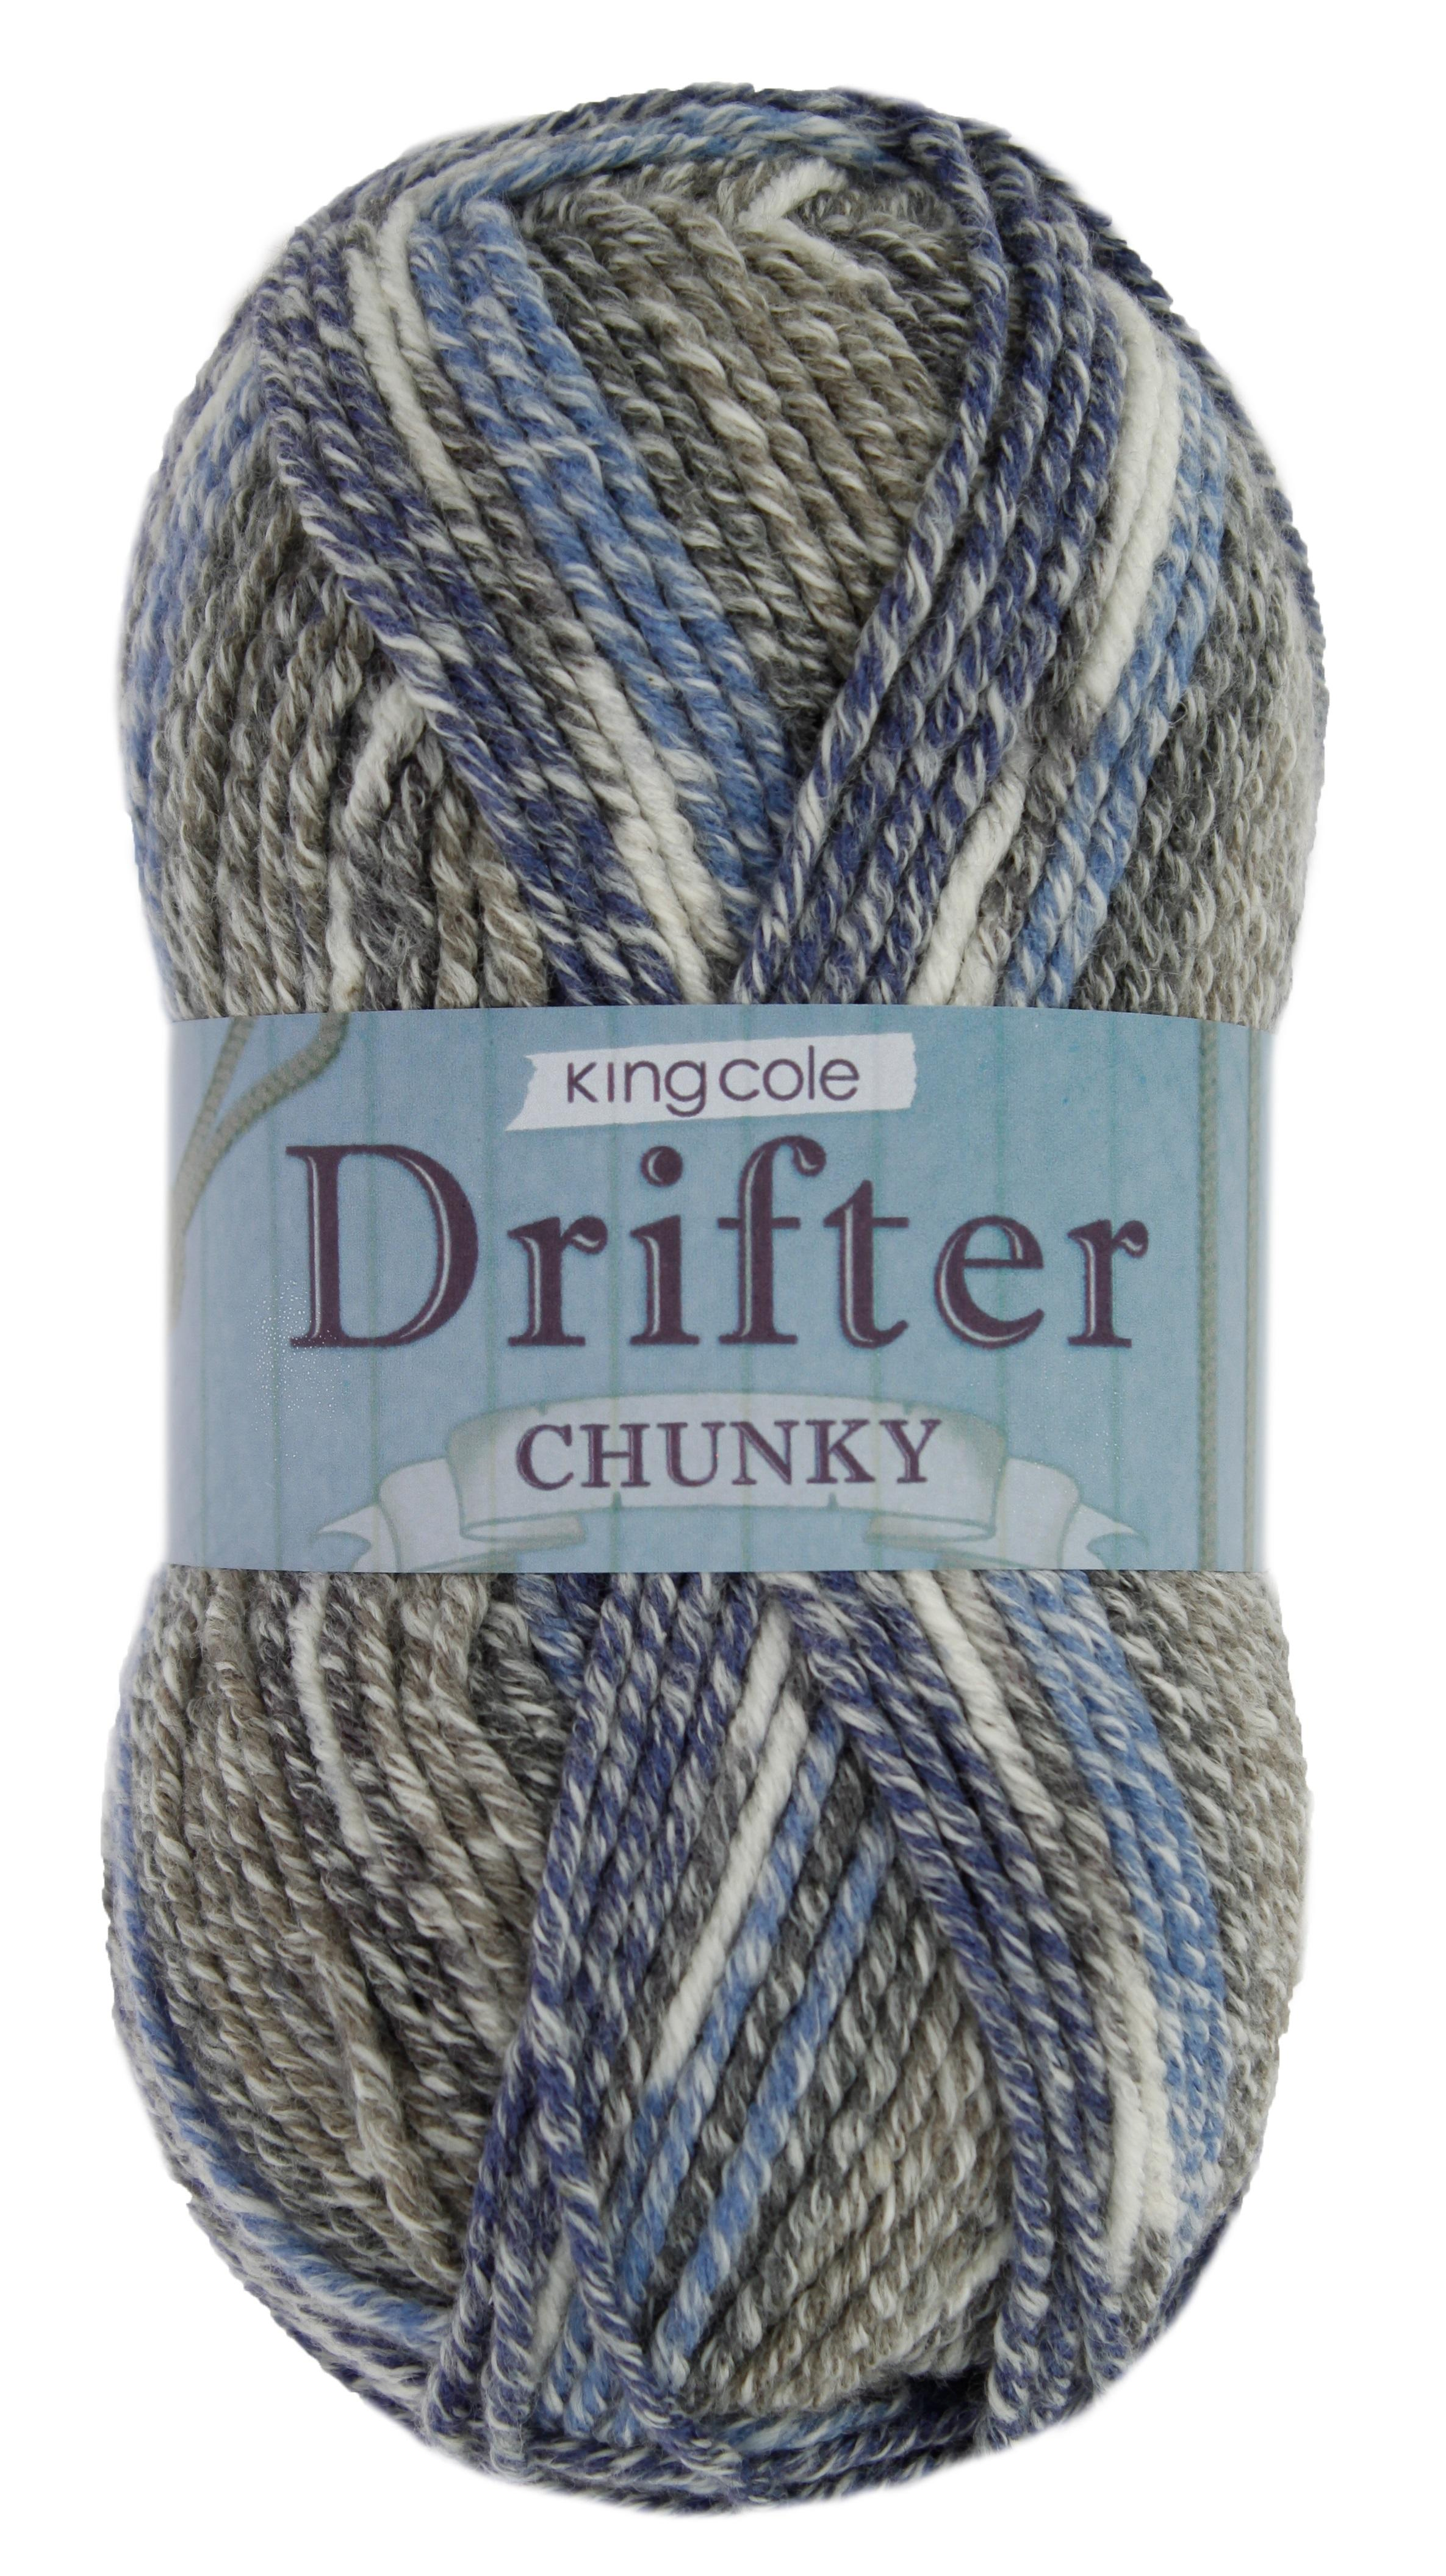 King Cole<P>Drifter Chunky 100g